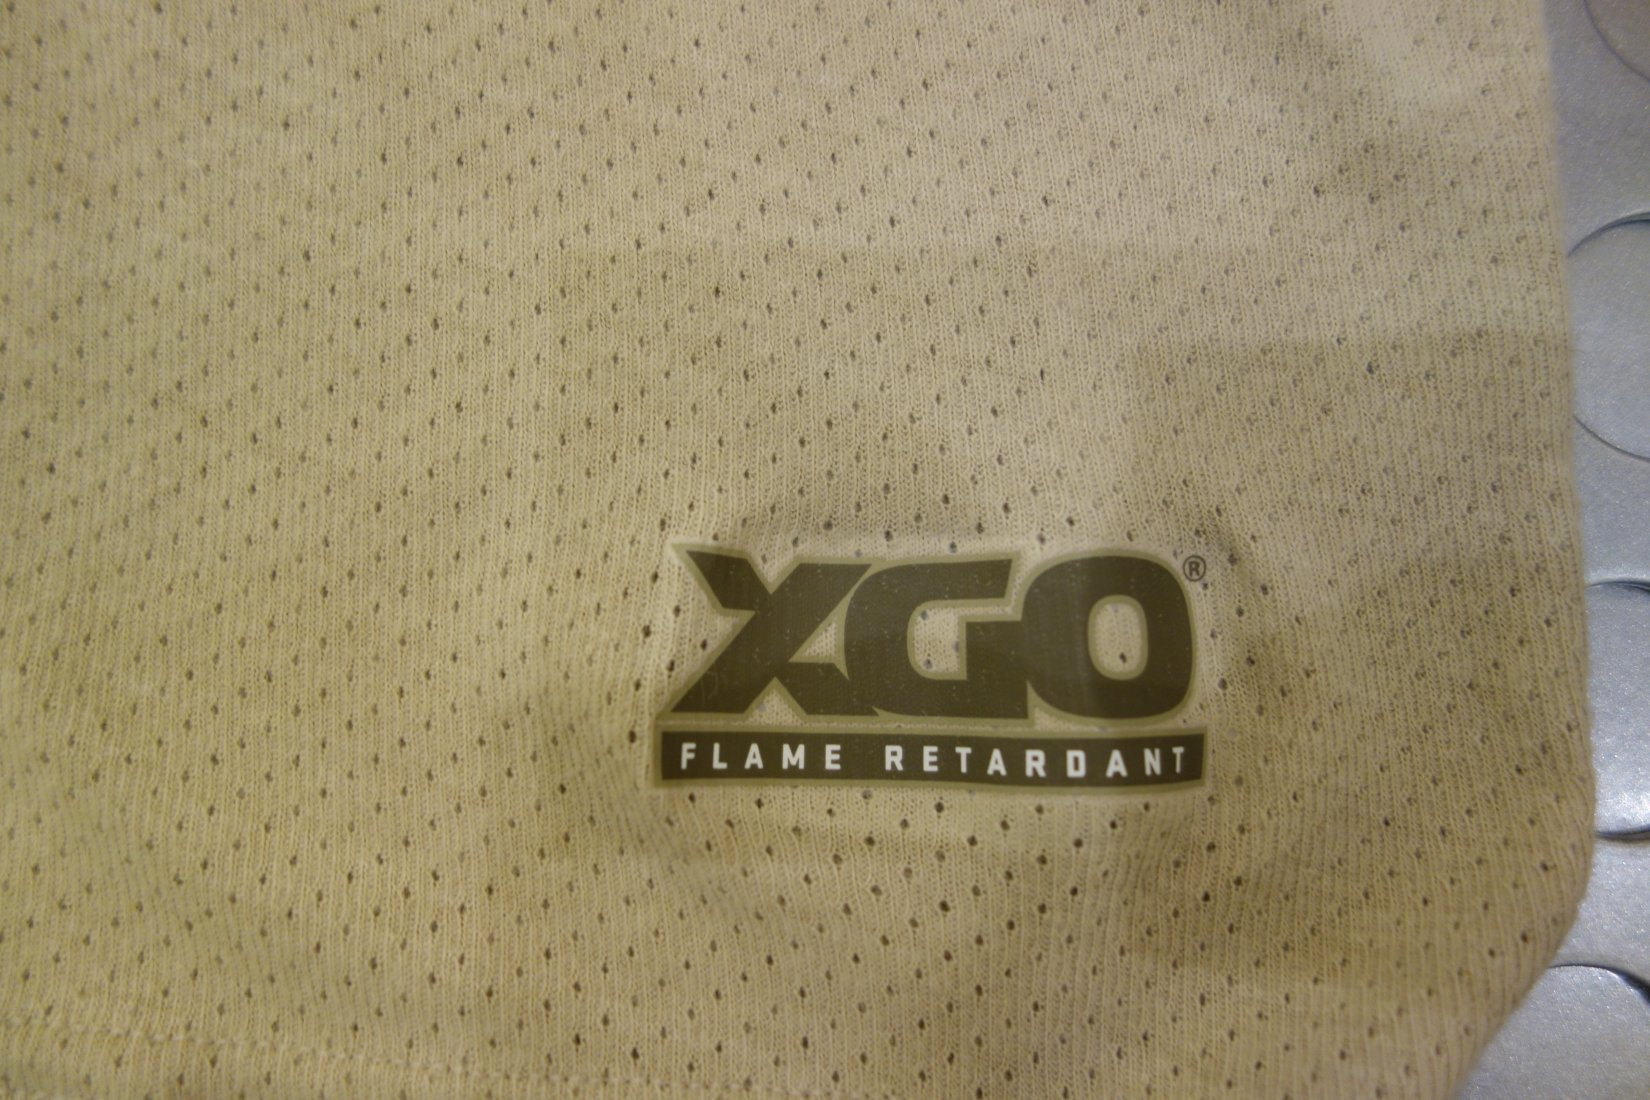 XGO FR Flame Retardant Fire Retardant Mesh Moisture Wicking Fabric Combat Tactical T Shirt with Antimicrobial Silver Fibers Sherry Lyons SHOT Show 2013 David Crane DefenseReview.com DR 2 XGO Combat/Tactical T Shirt and Underwear with FR (Flame Retardant/Fire Retardant) Moisture Wicking Mesh Fabric and Antimicrobial Silver Fibers: Super Comfortable, Stretchable and Breathable! (Video!)